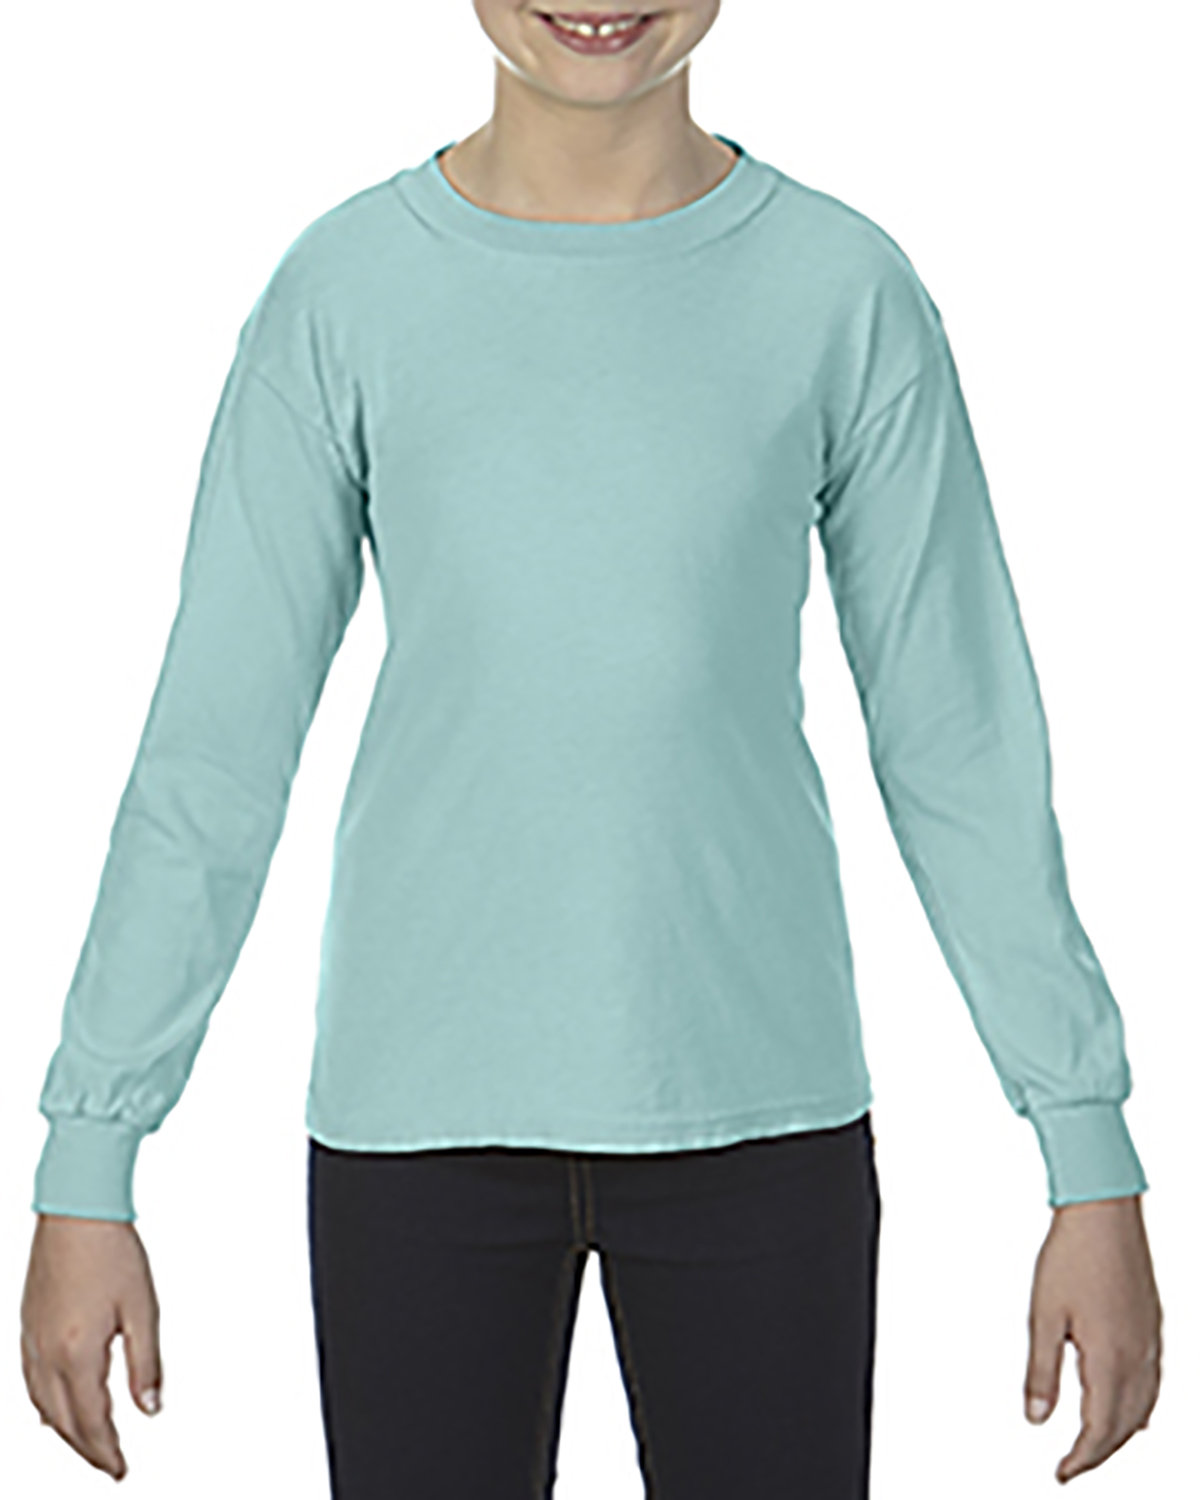 Comfort Colors Youth Garment-Dyed Long-Sleeve T-Shirt CHALKY MINT